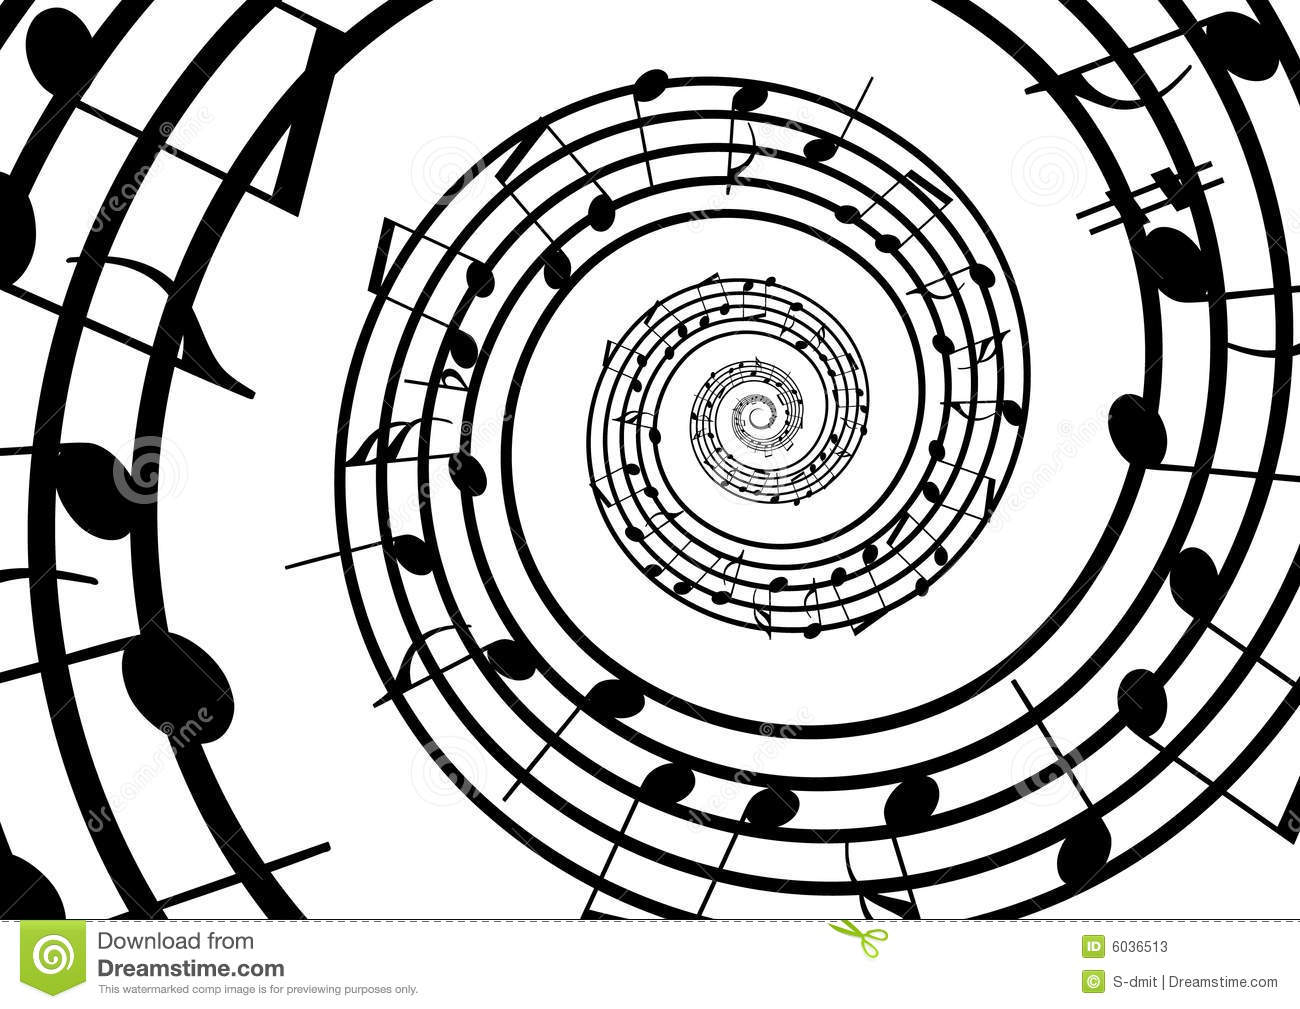 Abstract Music Notes Art: Abstract Musical Lines With Notes Stock Photos